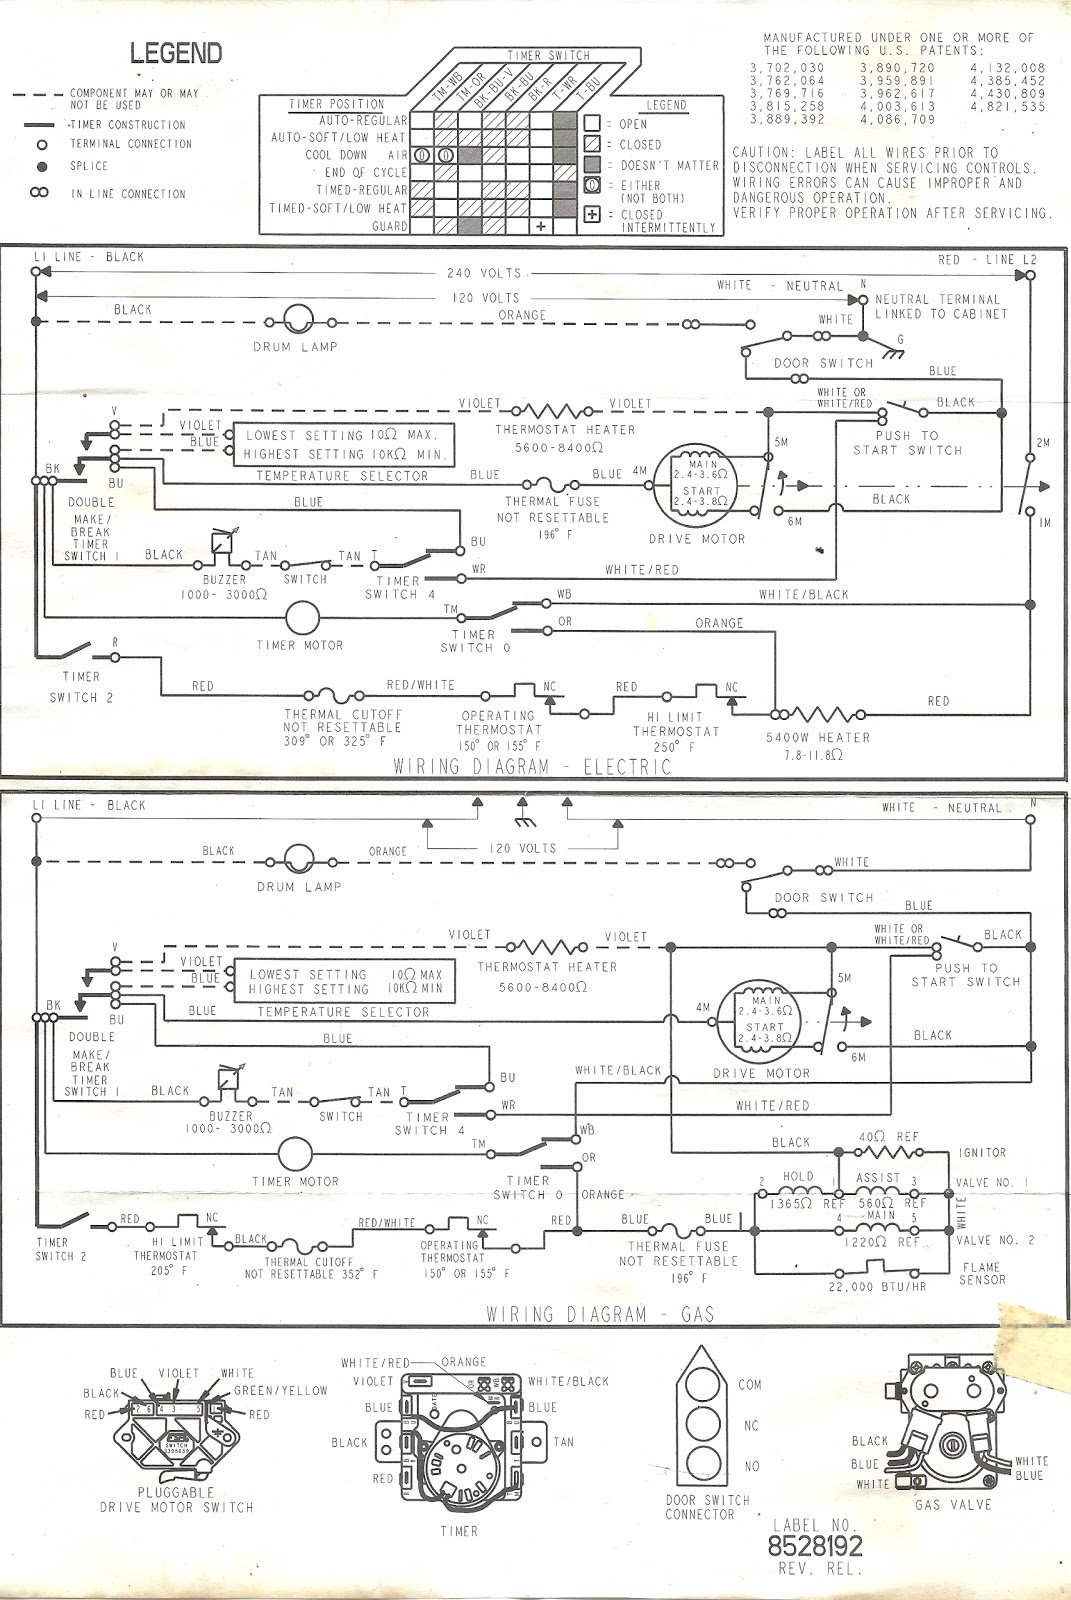 Kenmore Dryer Wiring Diagram Temp Just Another Blog Outlet Fuse Appliance Talk For A Full Rh Applianceoutletservice Com 110 Schematic Model 73952101